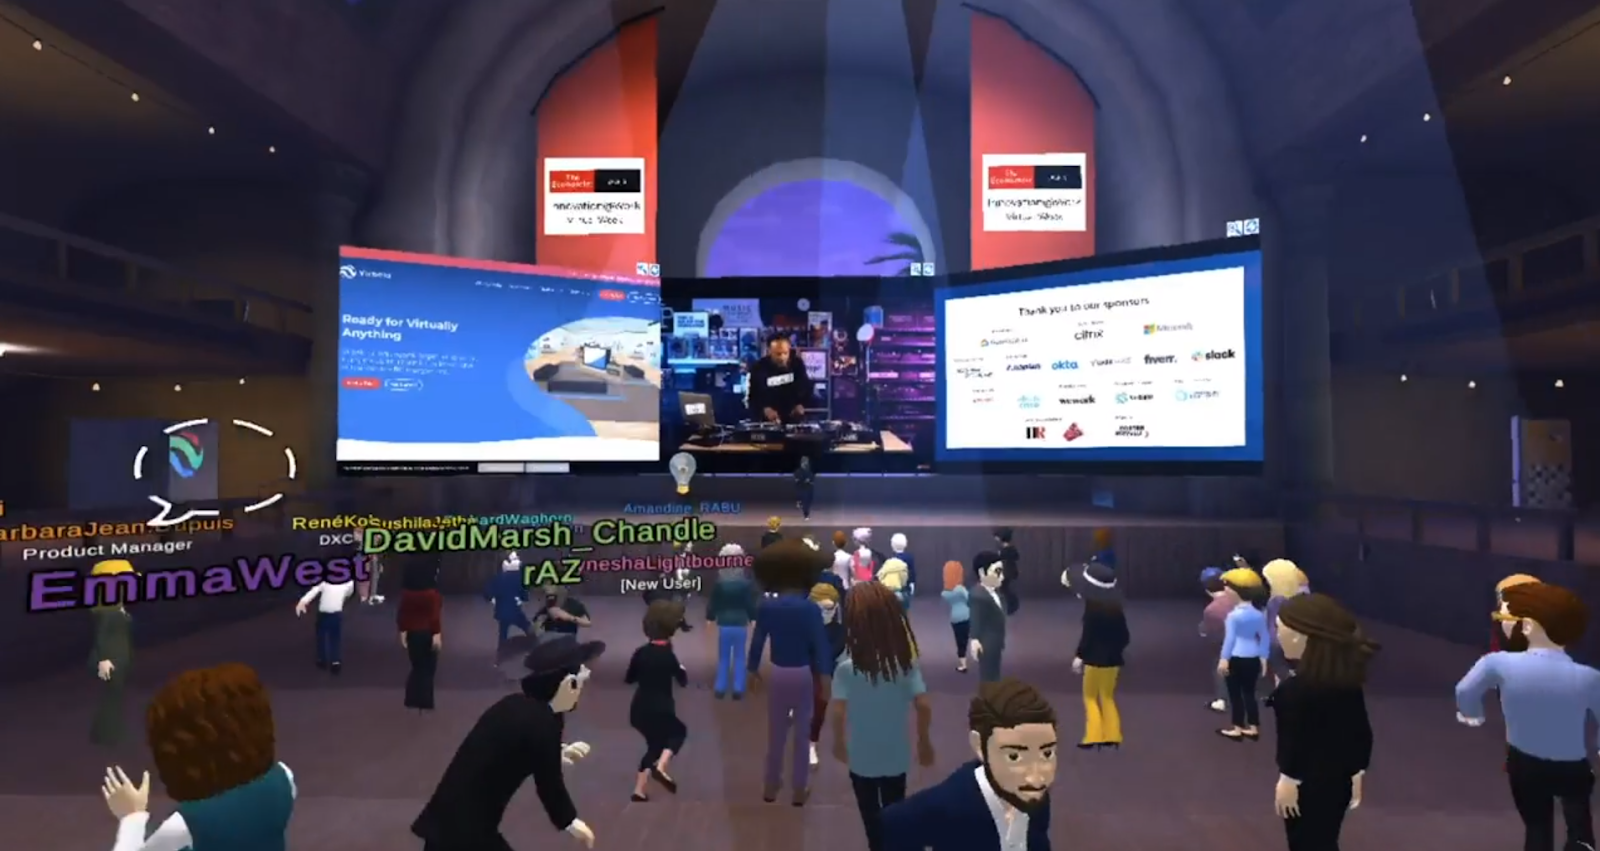 For The Economist Events, A Virtual After-Party Builds Global Networks